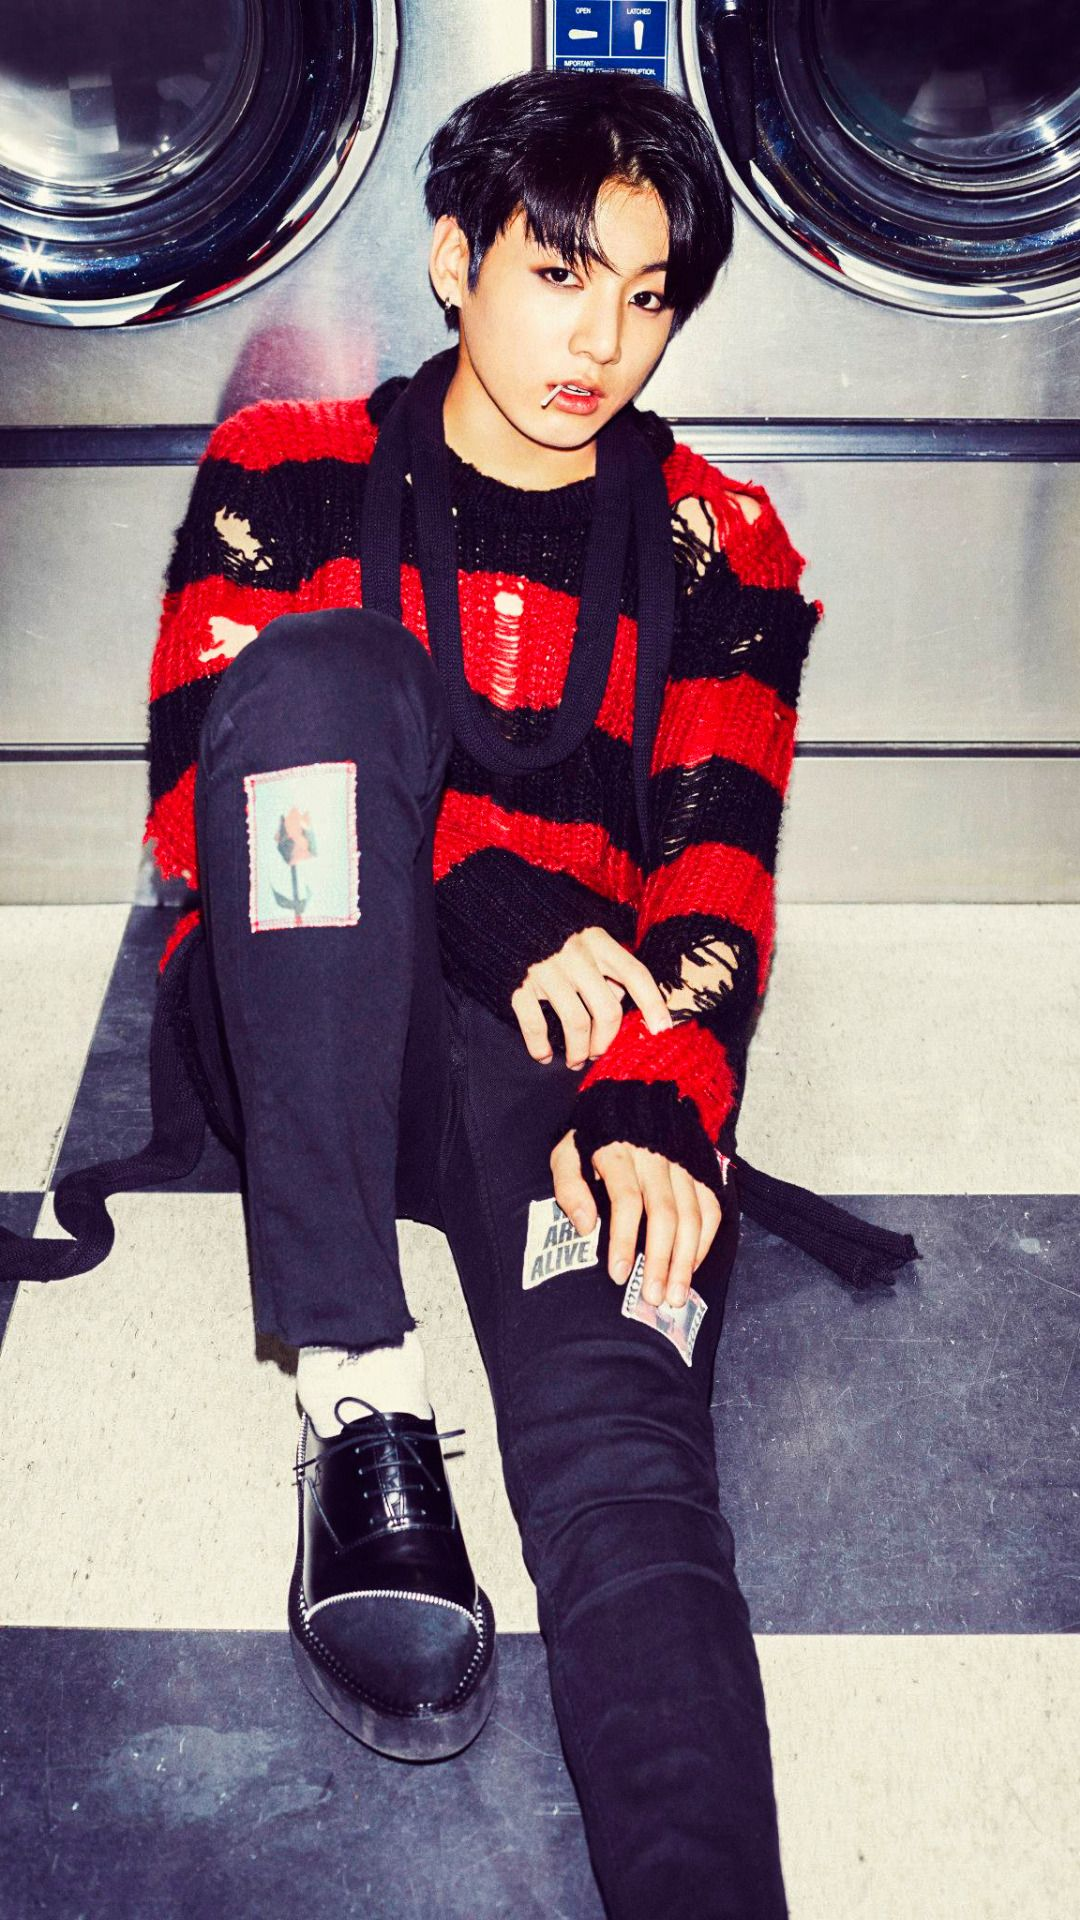 krpwallpapers: BTS Jungkook wallpapers requested... - Souless